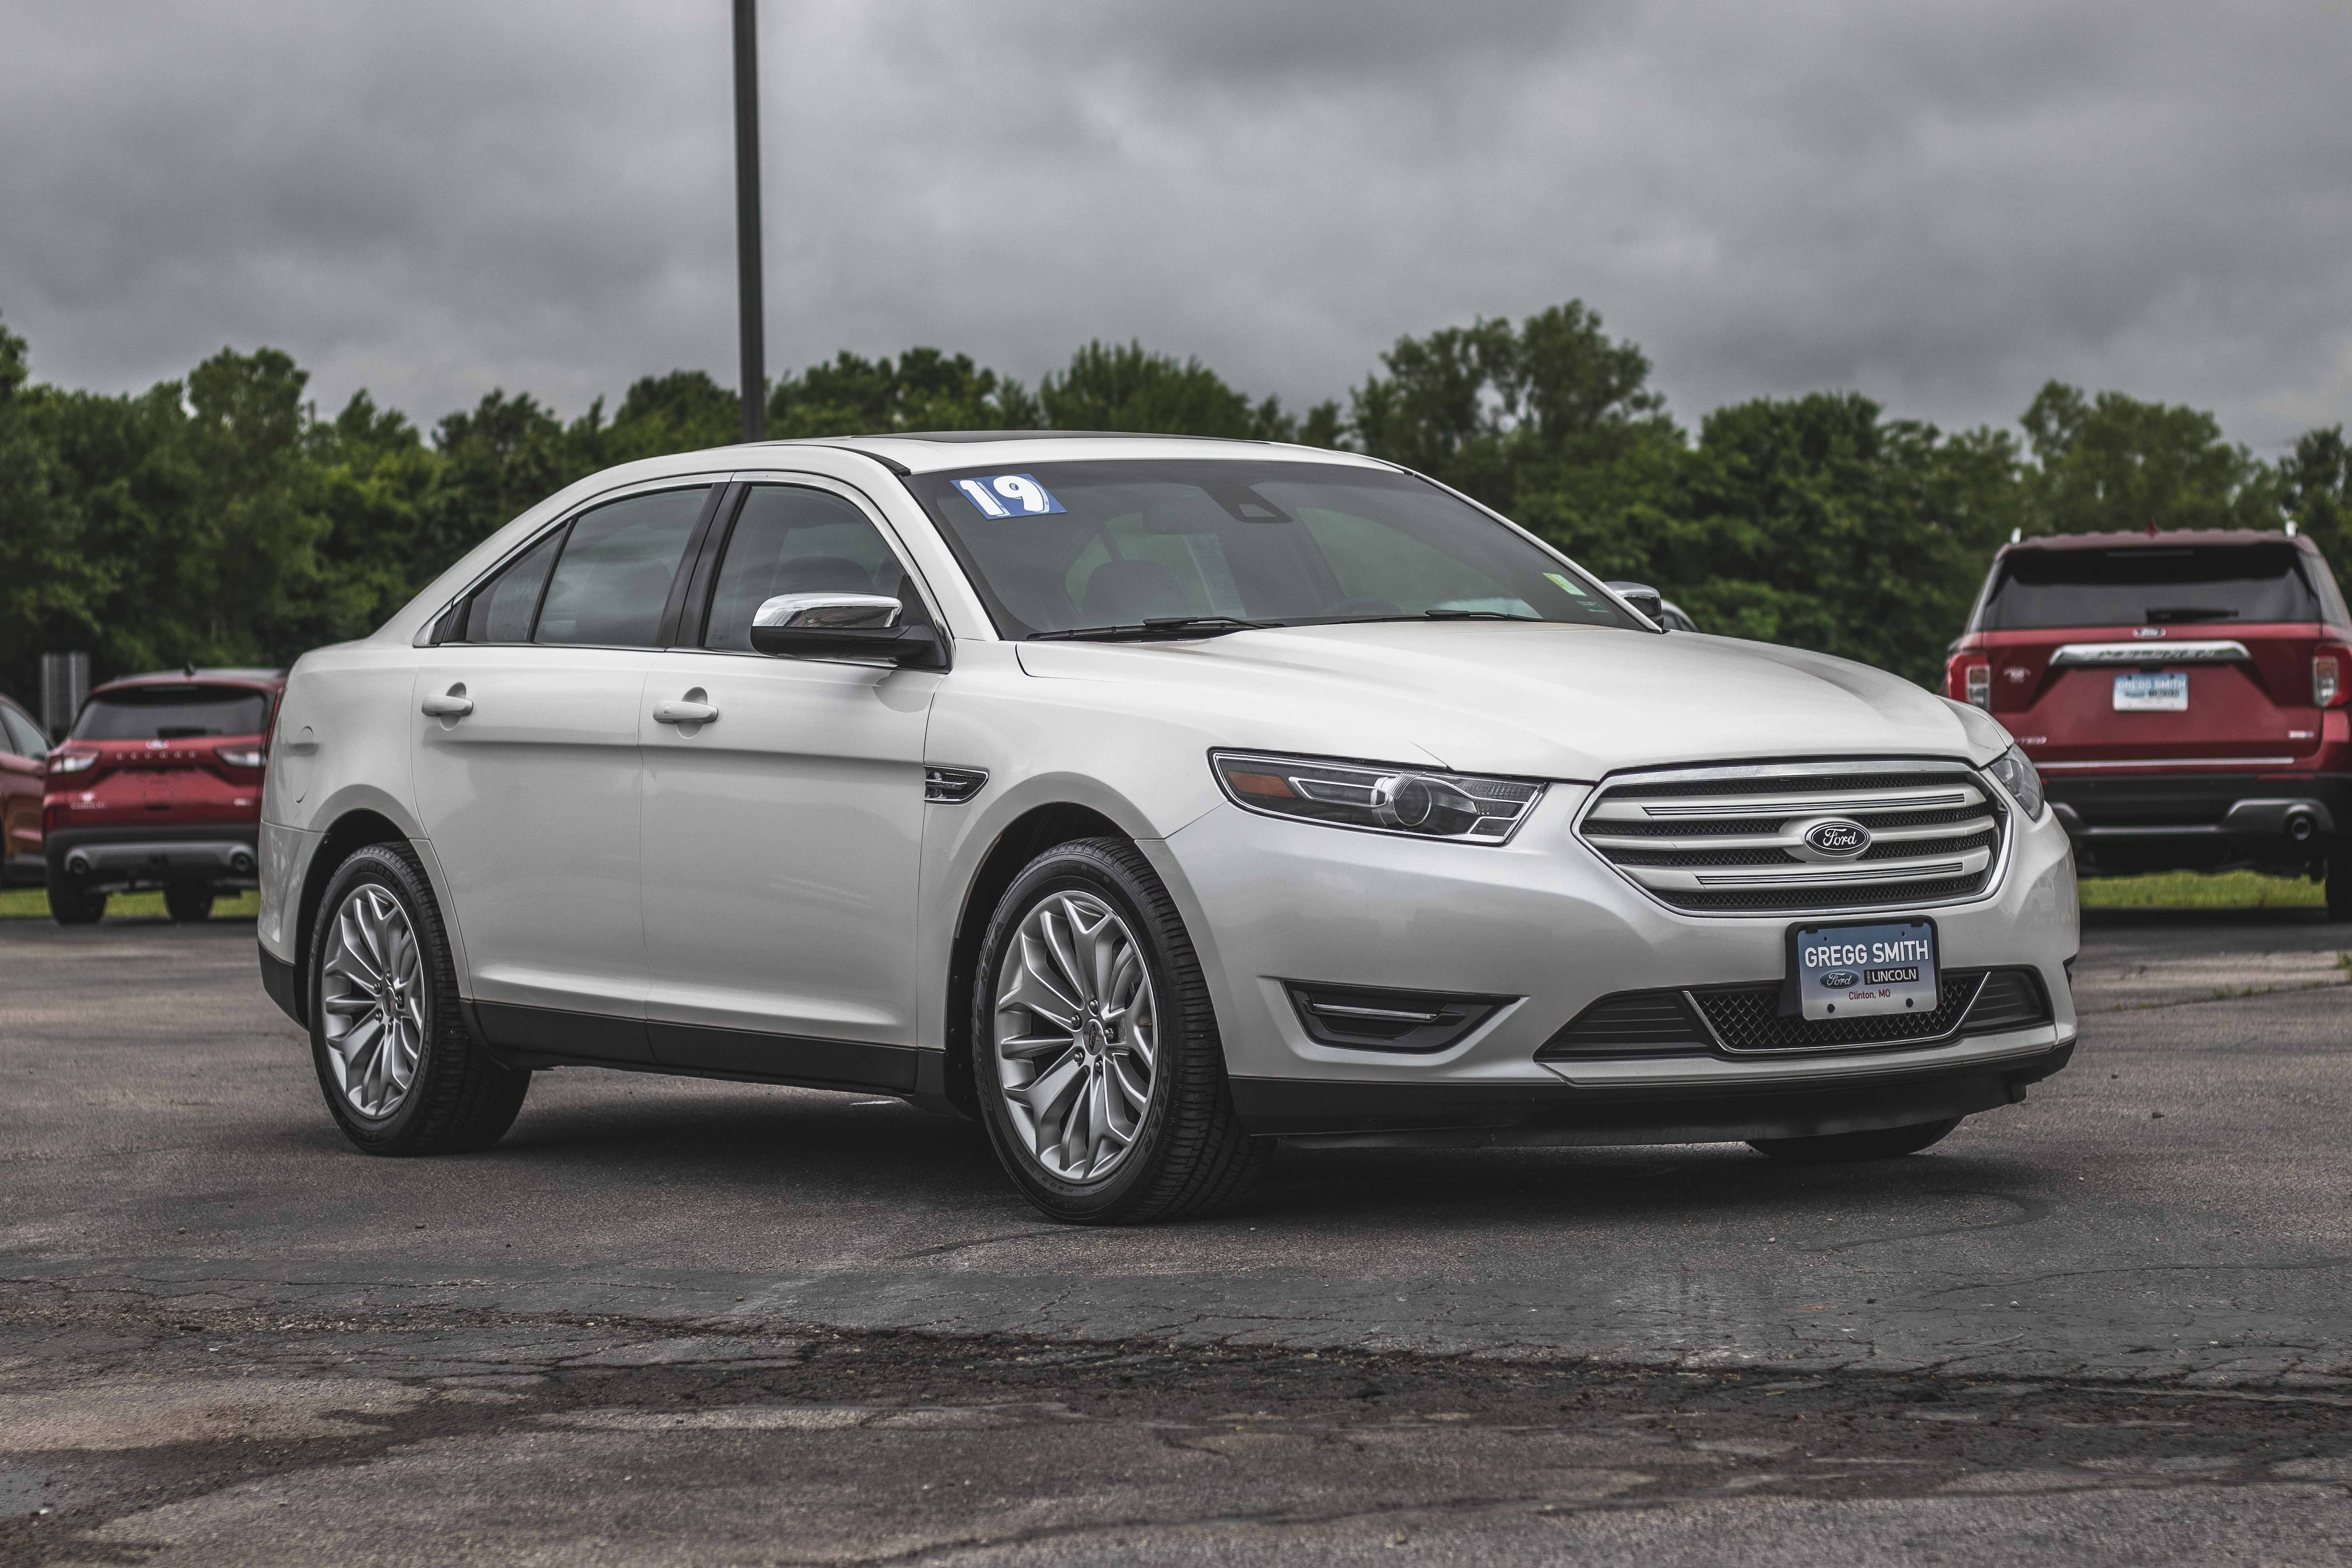 Used Vehicle Inventory Gregg Smith Ford Lincoln In Clinton